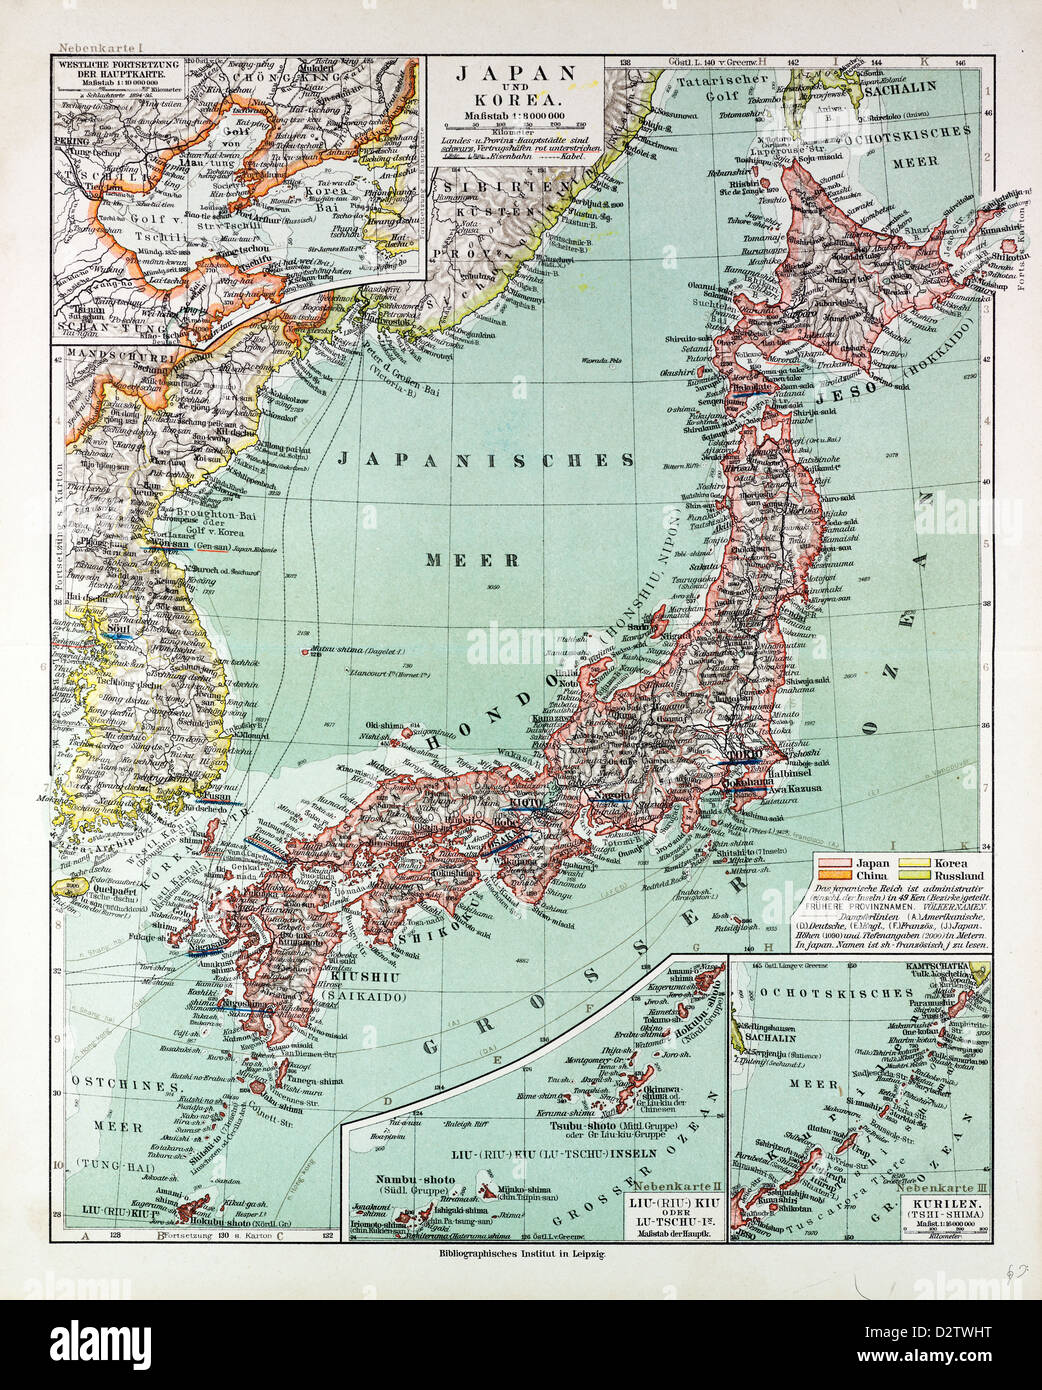 MAP OF JAPAN 1899 - Stock Image